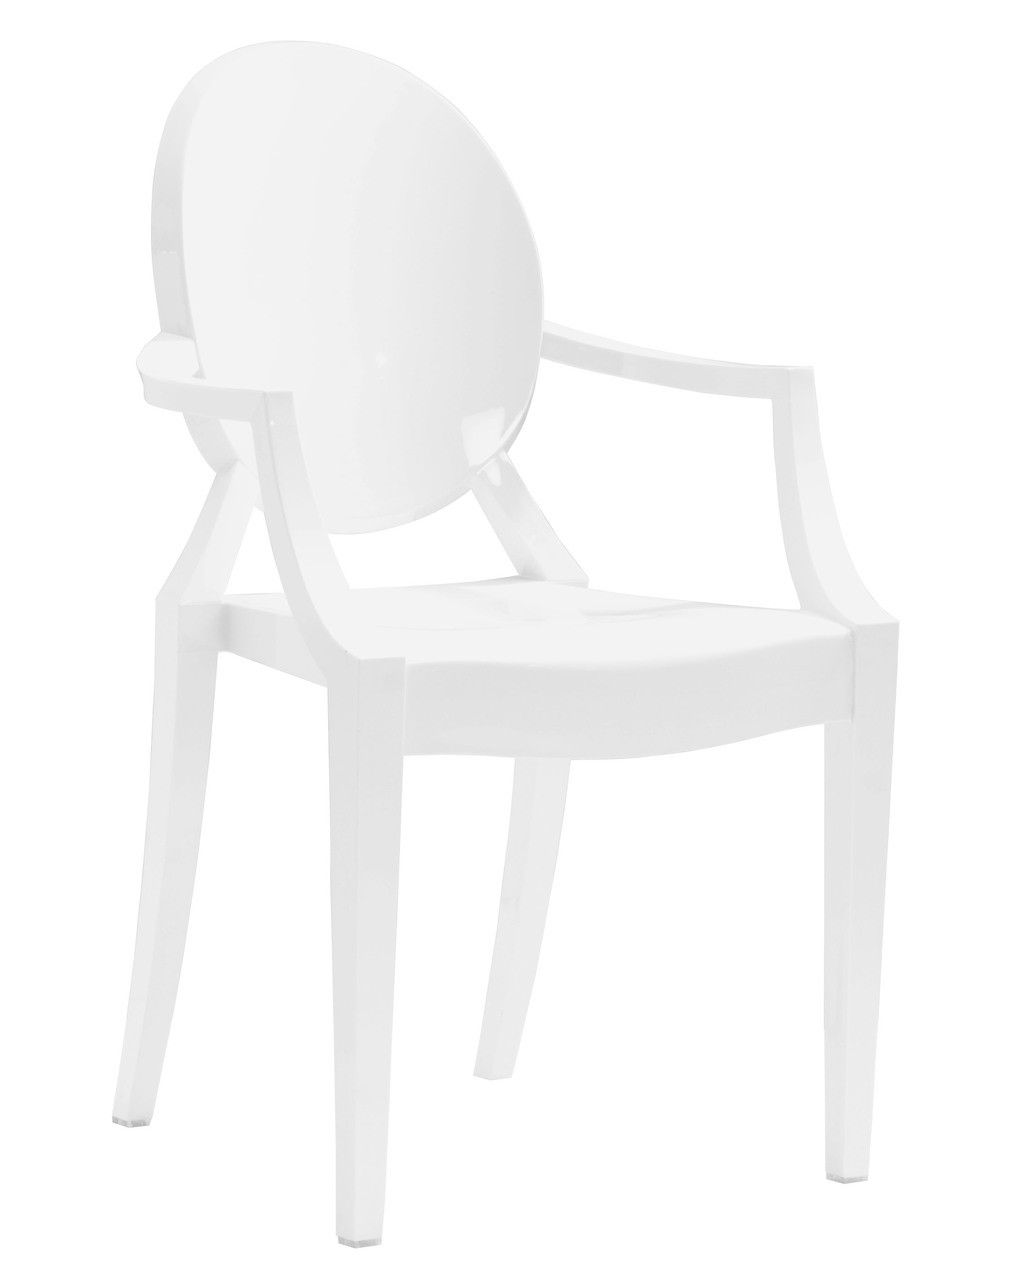 Swell Anime Dining Chair By Zuo Modern Set Of Four Laurel At Andrewgaddart Wooden Chair Designs For Living Room Andrewgaddartcom